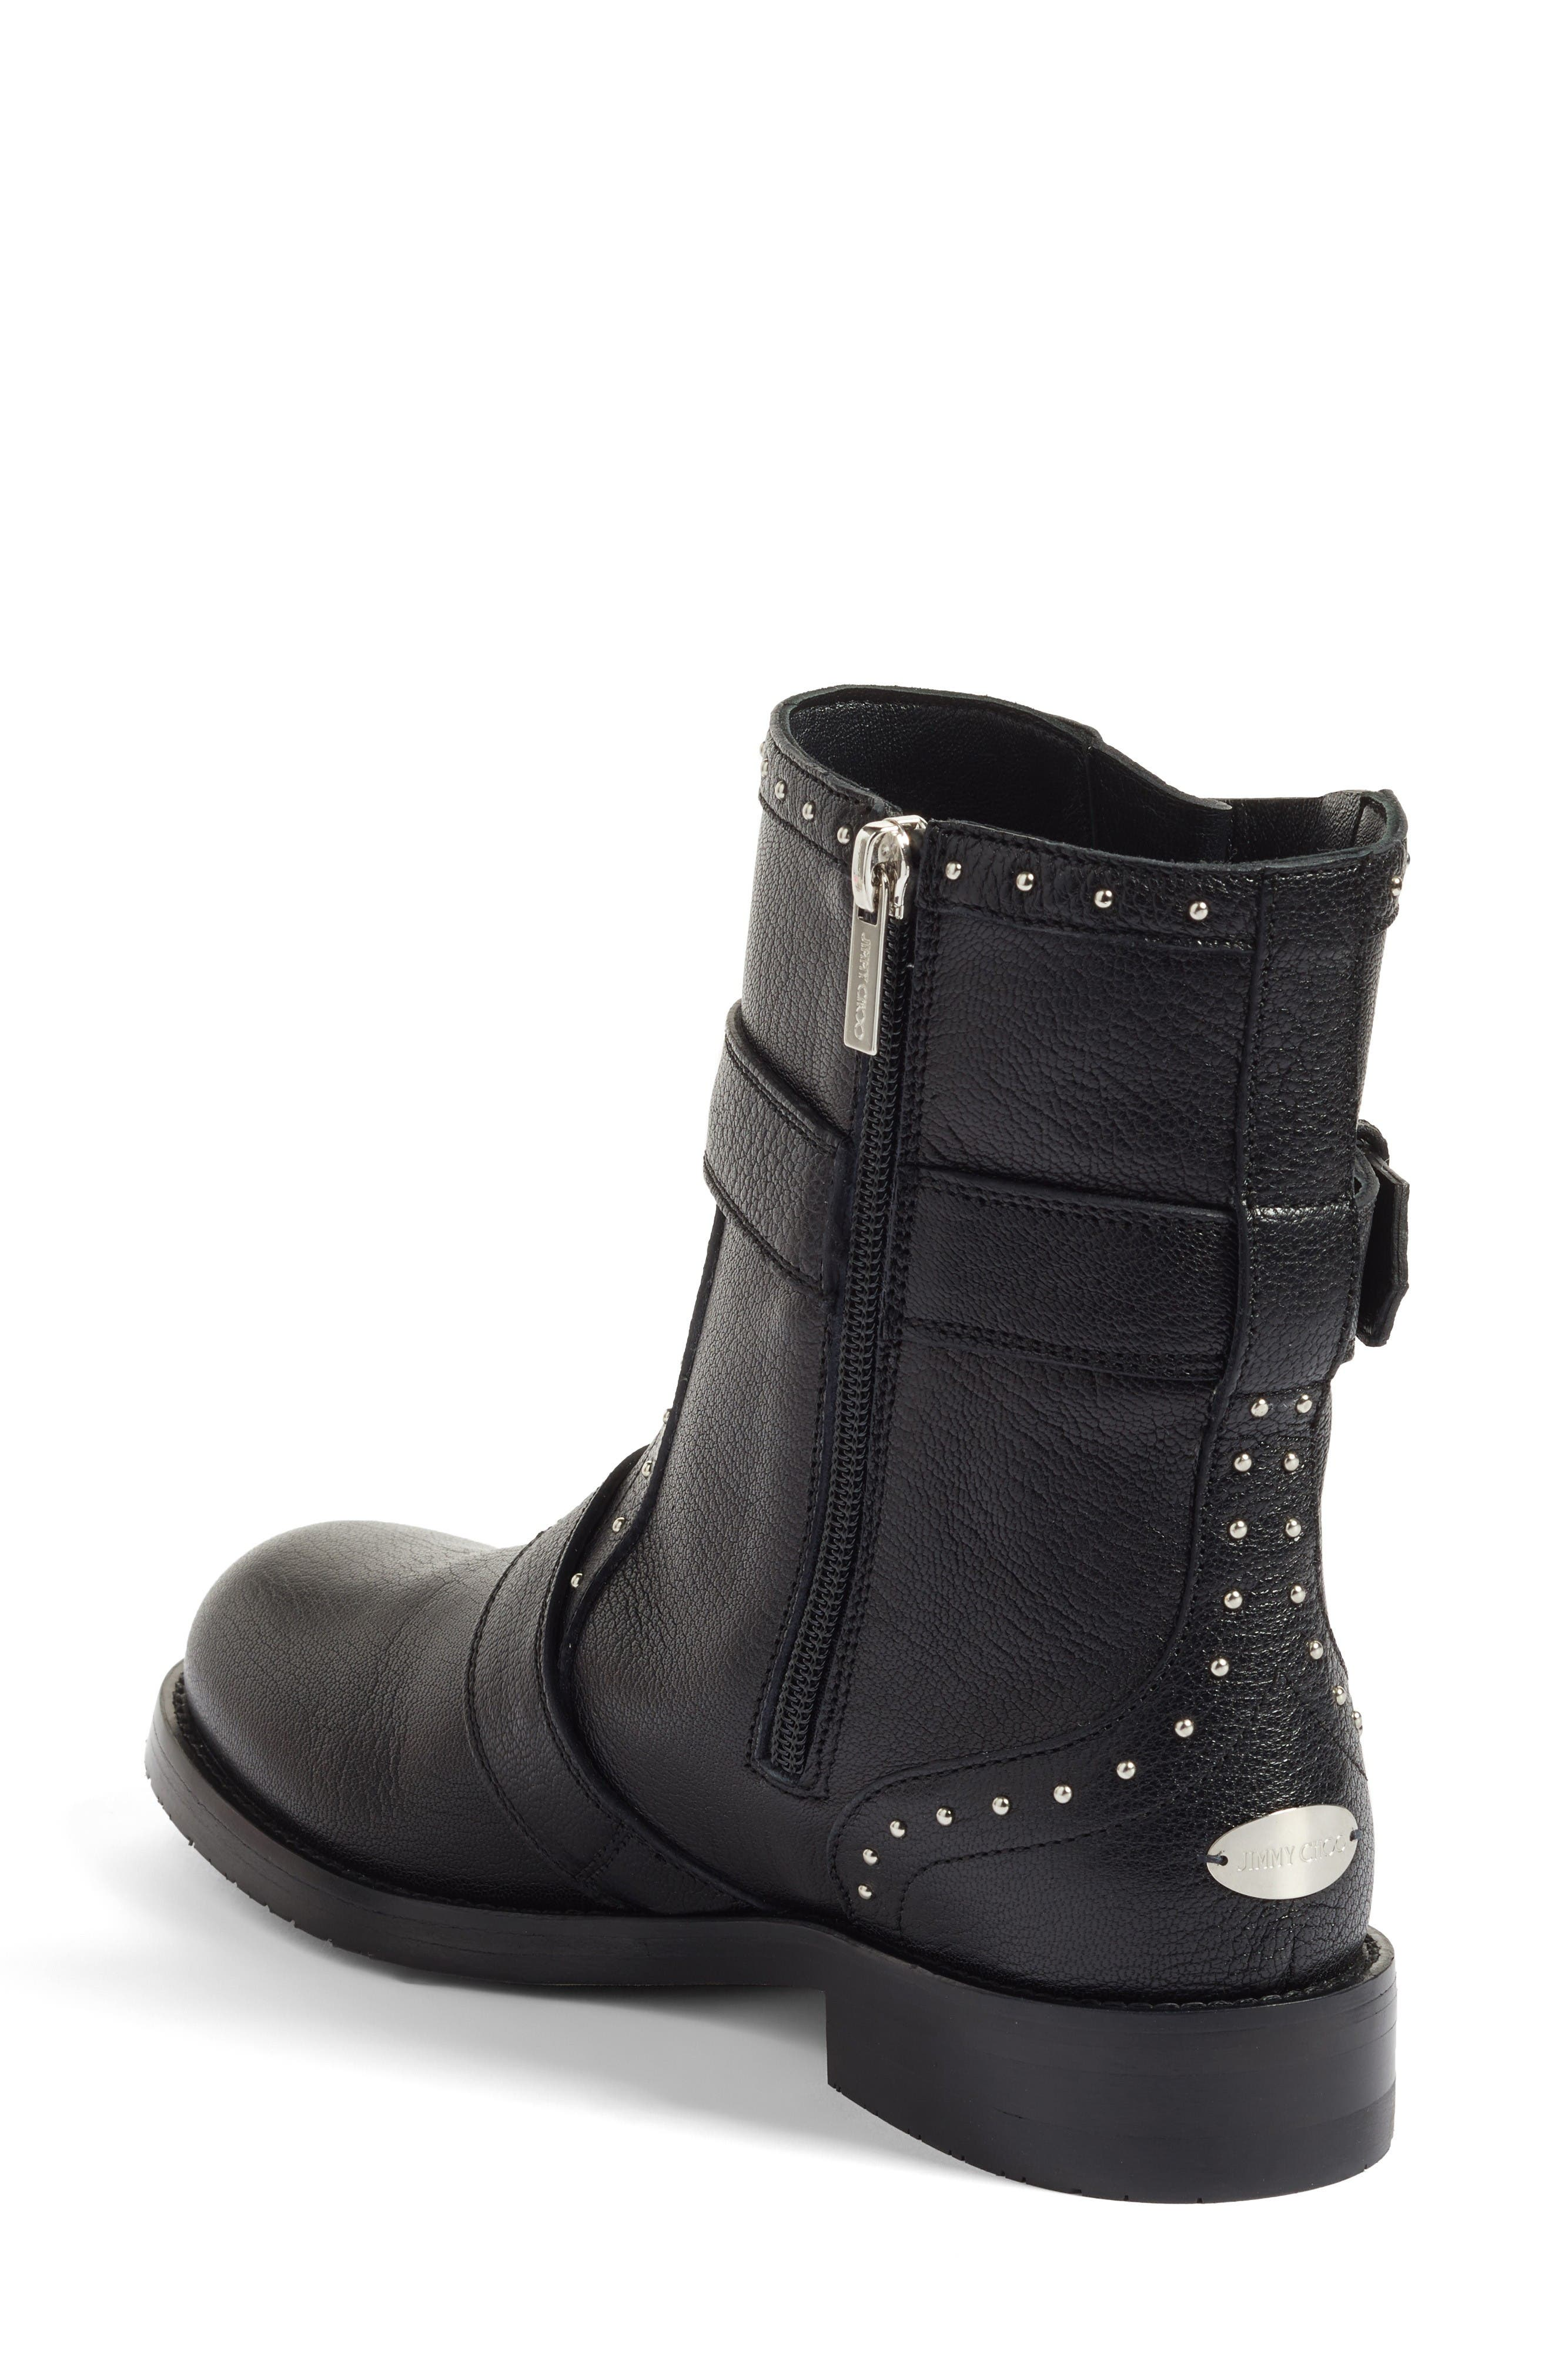 Blyss Combat Boot,                             Alternate thumbnail 2, color,                             Black Leather